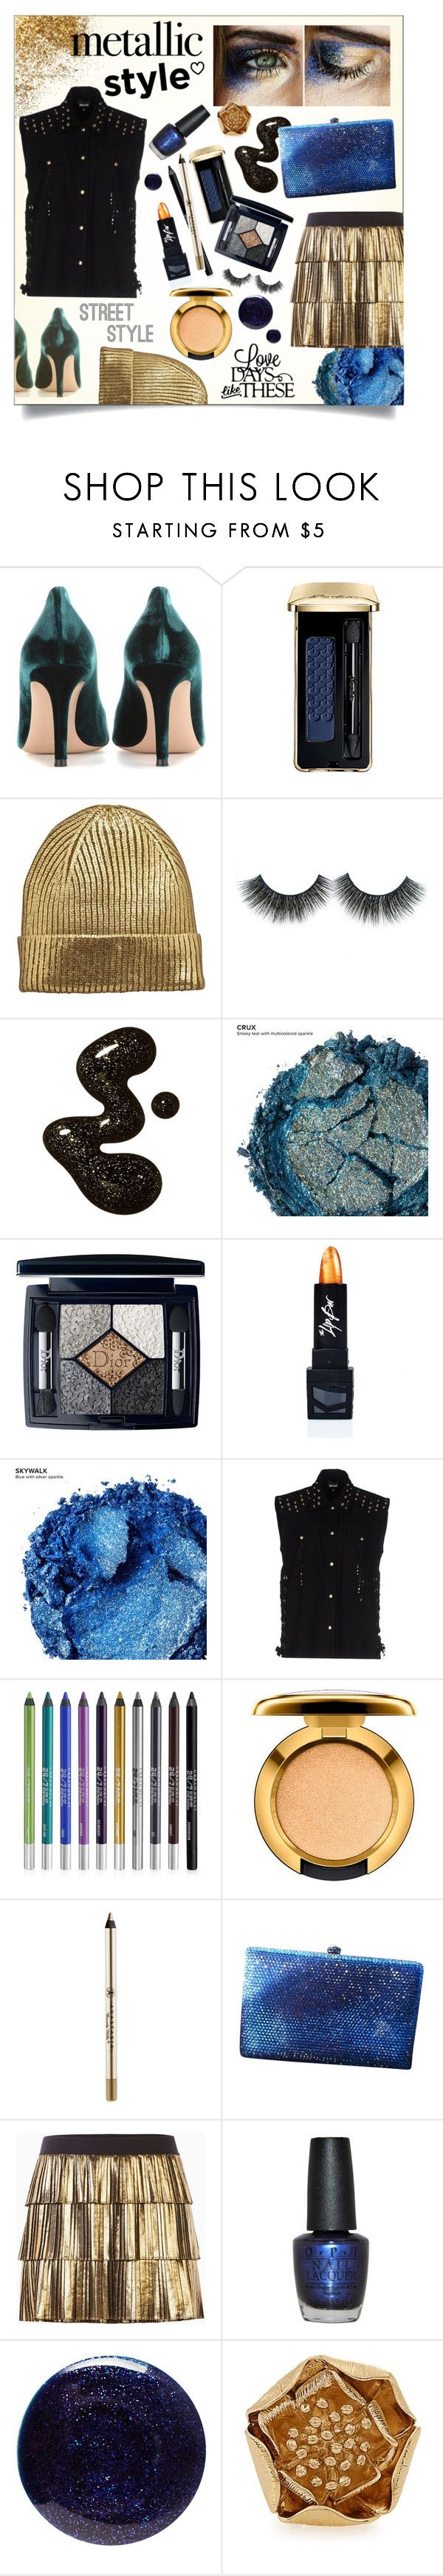 """Trending In My Town: Metallics"" by angie-in-reverie ❤ liked on Polyvore featuring Gianvito Rossi, Guerlain, Urban Decay, Christian Dior, The Lip Bar, Just Cavalli, Anastasia Beverly Hills, Anthropologie, BCBGMAXAZRIA and OPI"